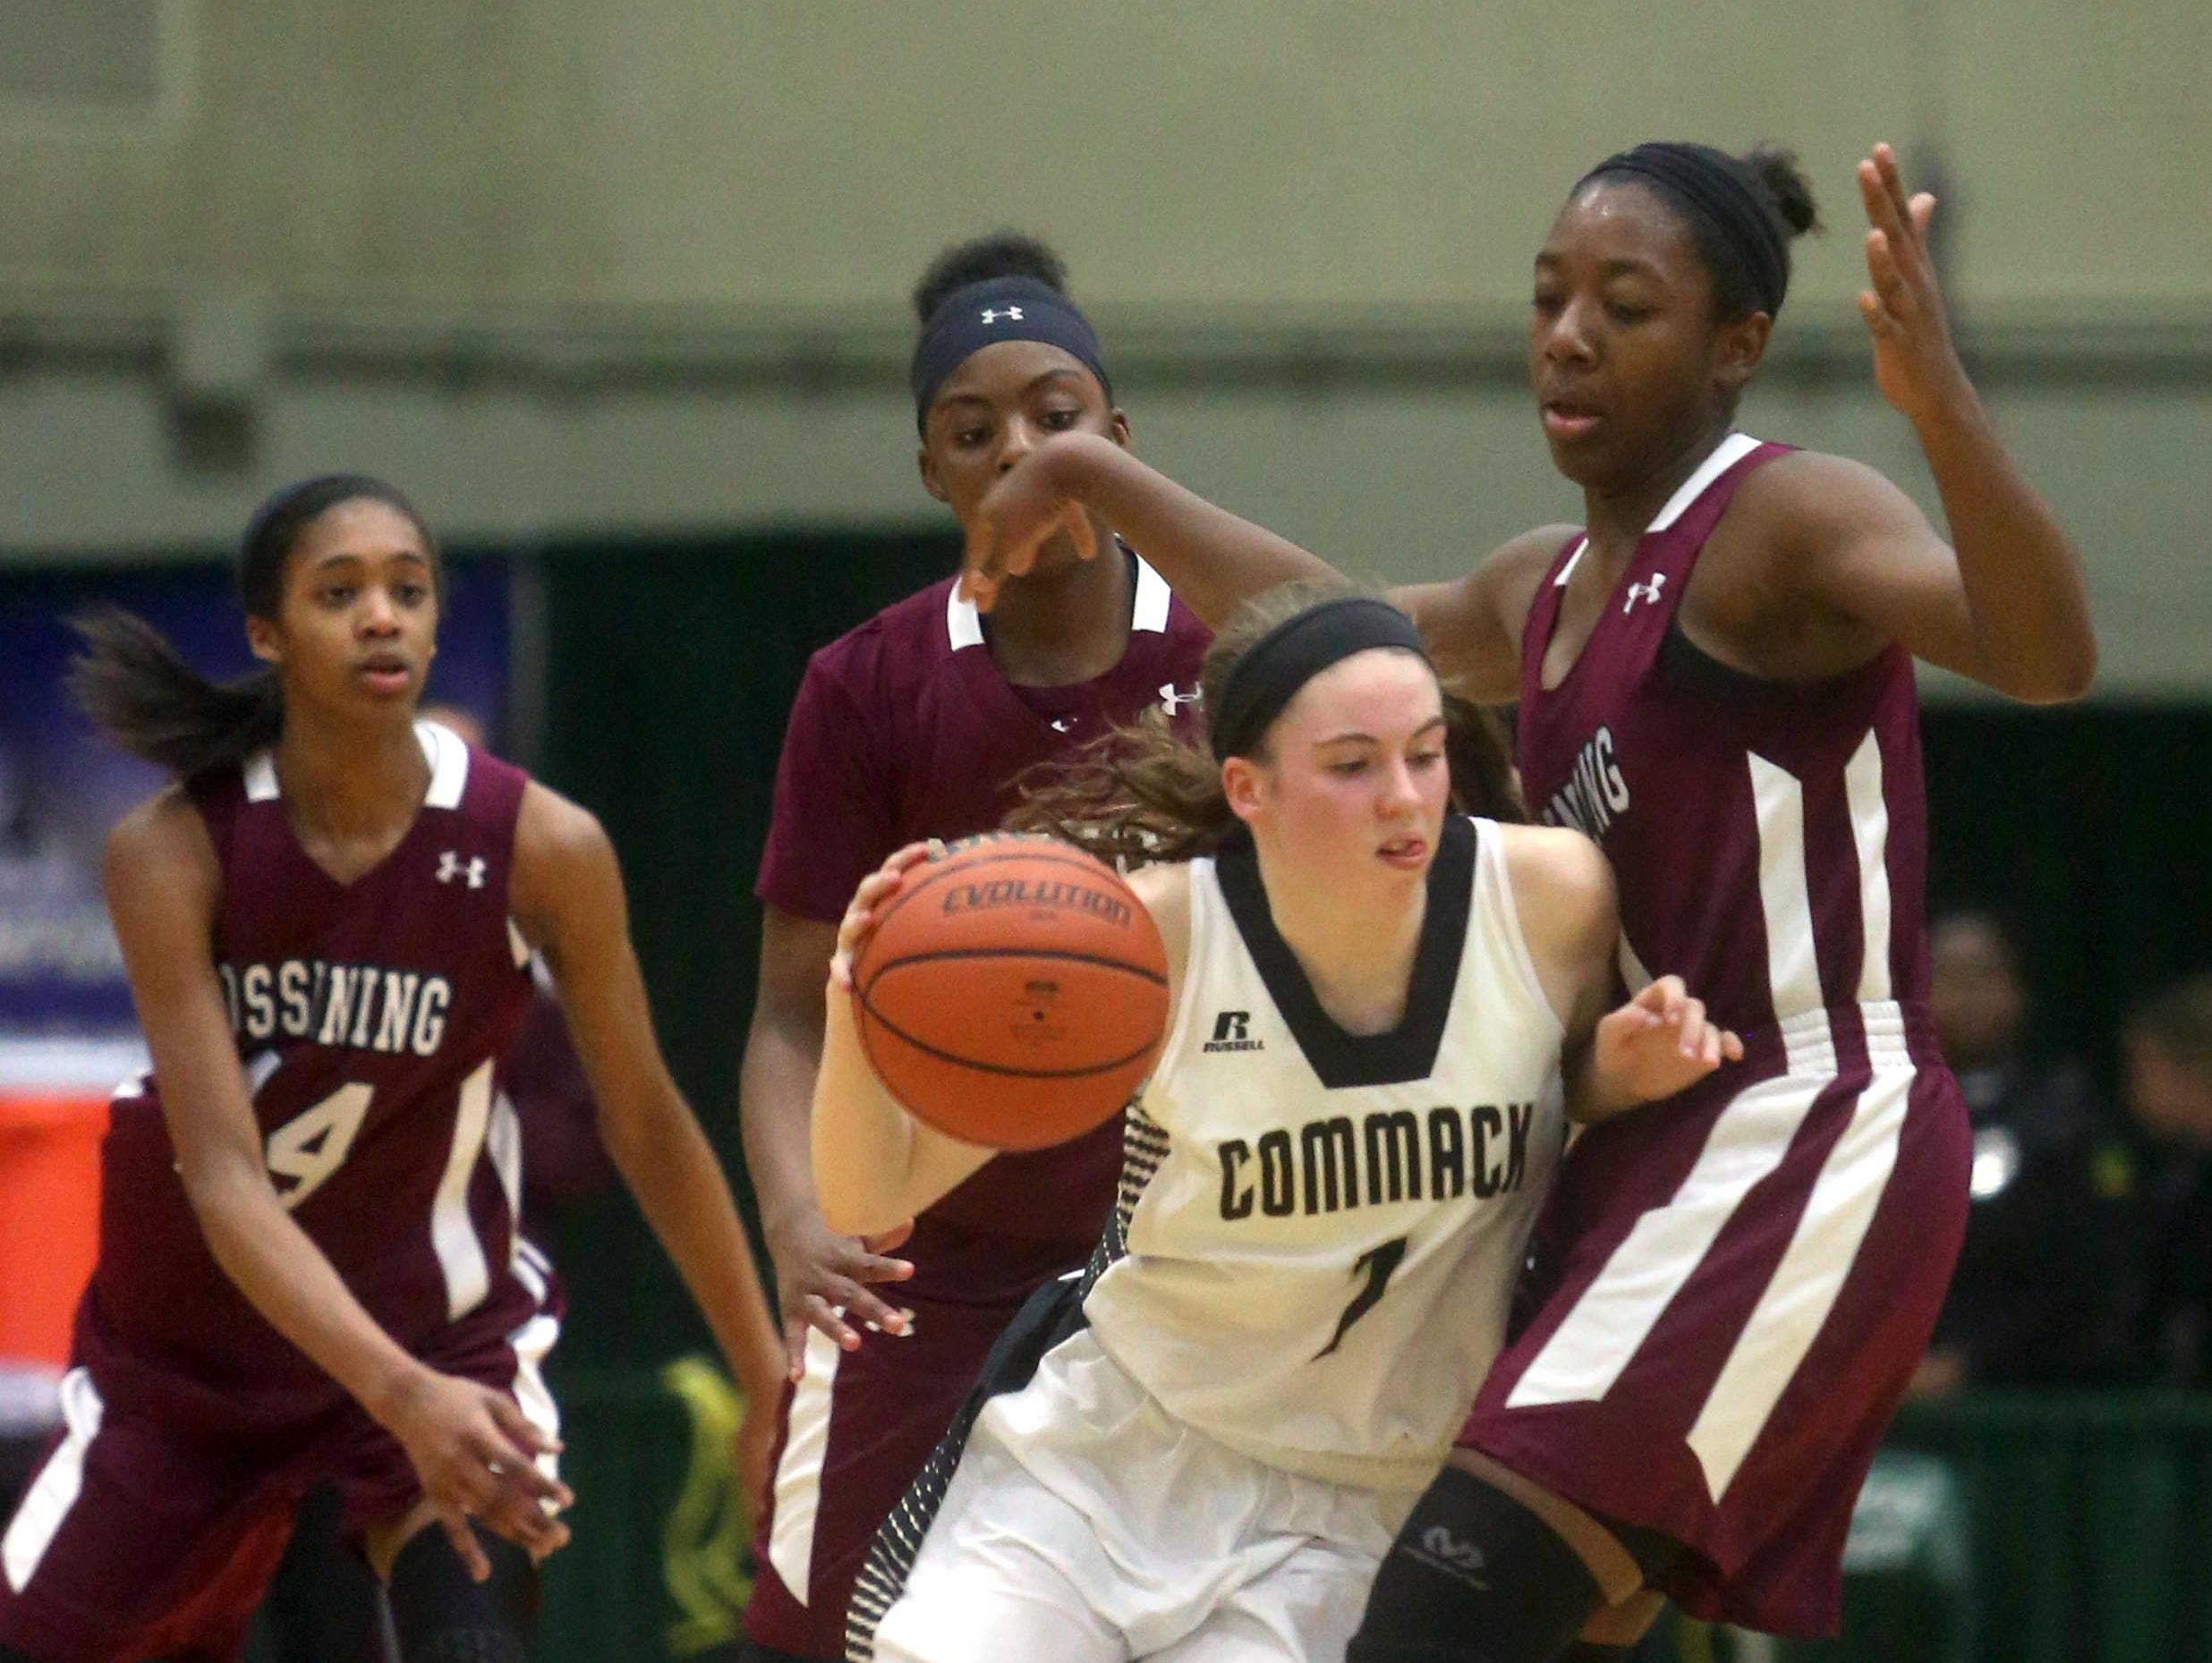 Commack's Casey Hearns runs into Ossining's Shadeen Samuels during a New York State Class AA semifinal game at Hudson Valley Community College in Troy March 11, 2016. Samuels led all scorers with 32 points as Ossining defeated Cormack 72-55.